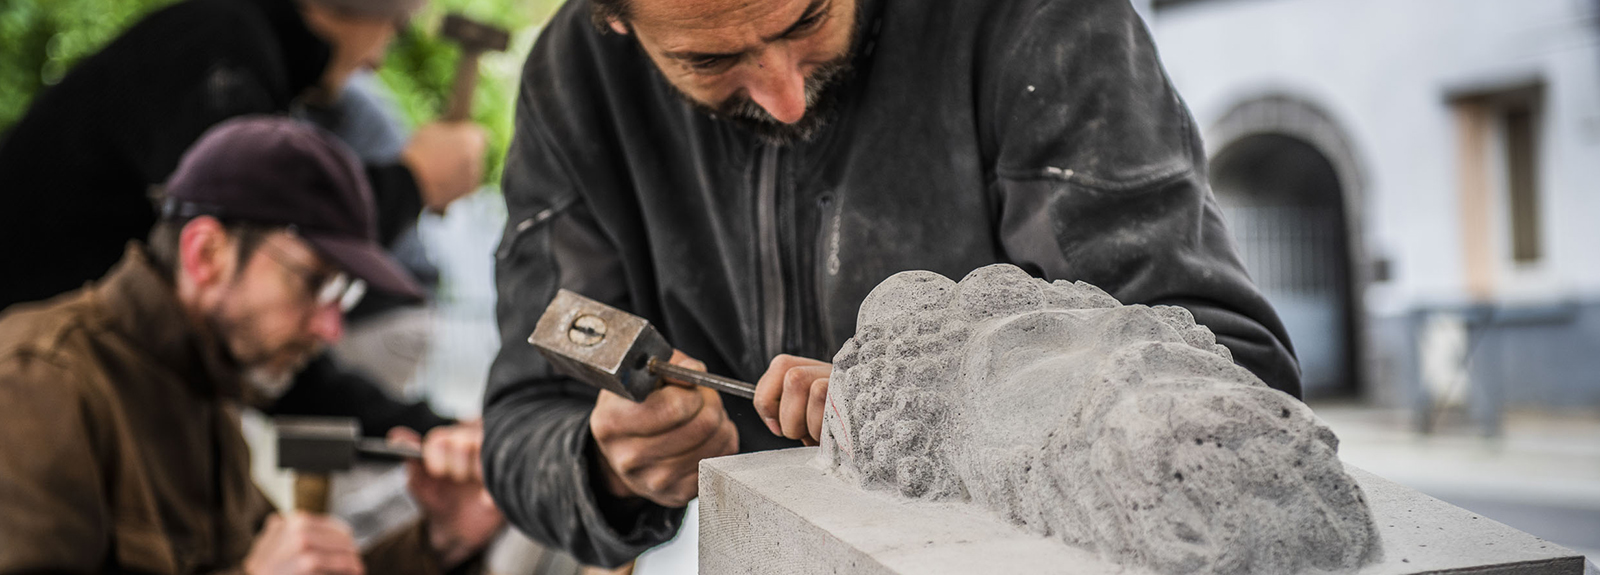 Demonstration by professional stonemasons